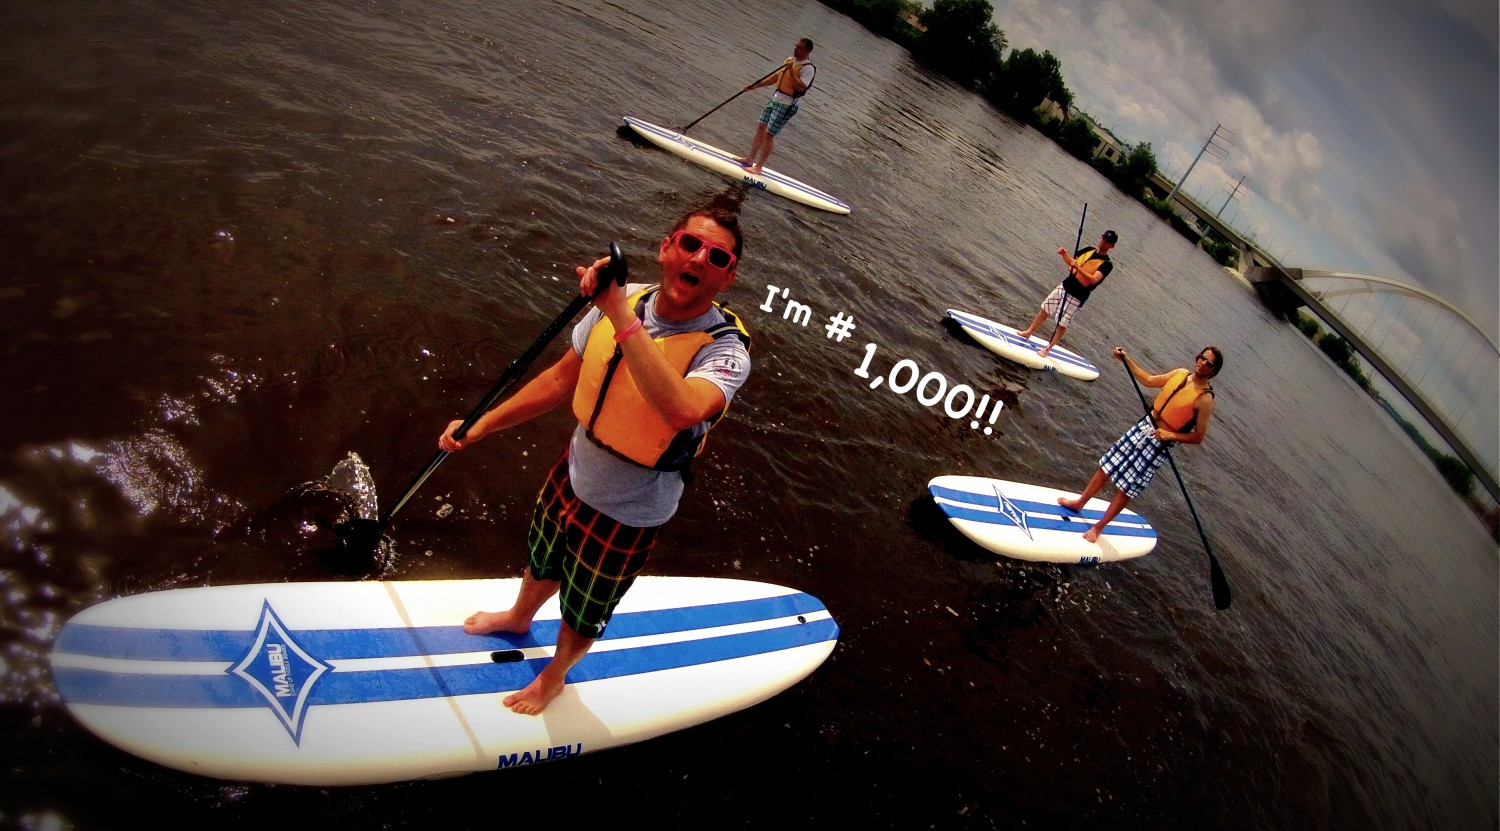 So happy to paddleboard with all of you in the twin cities!